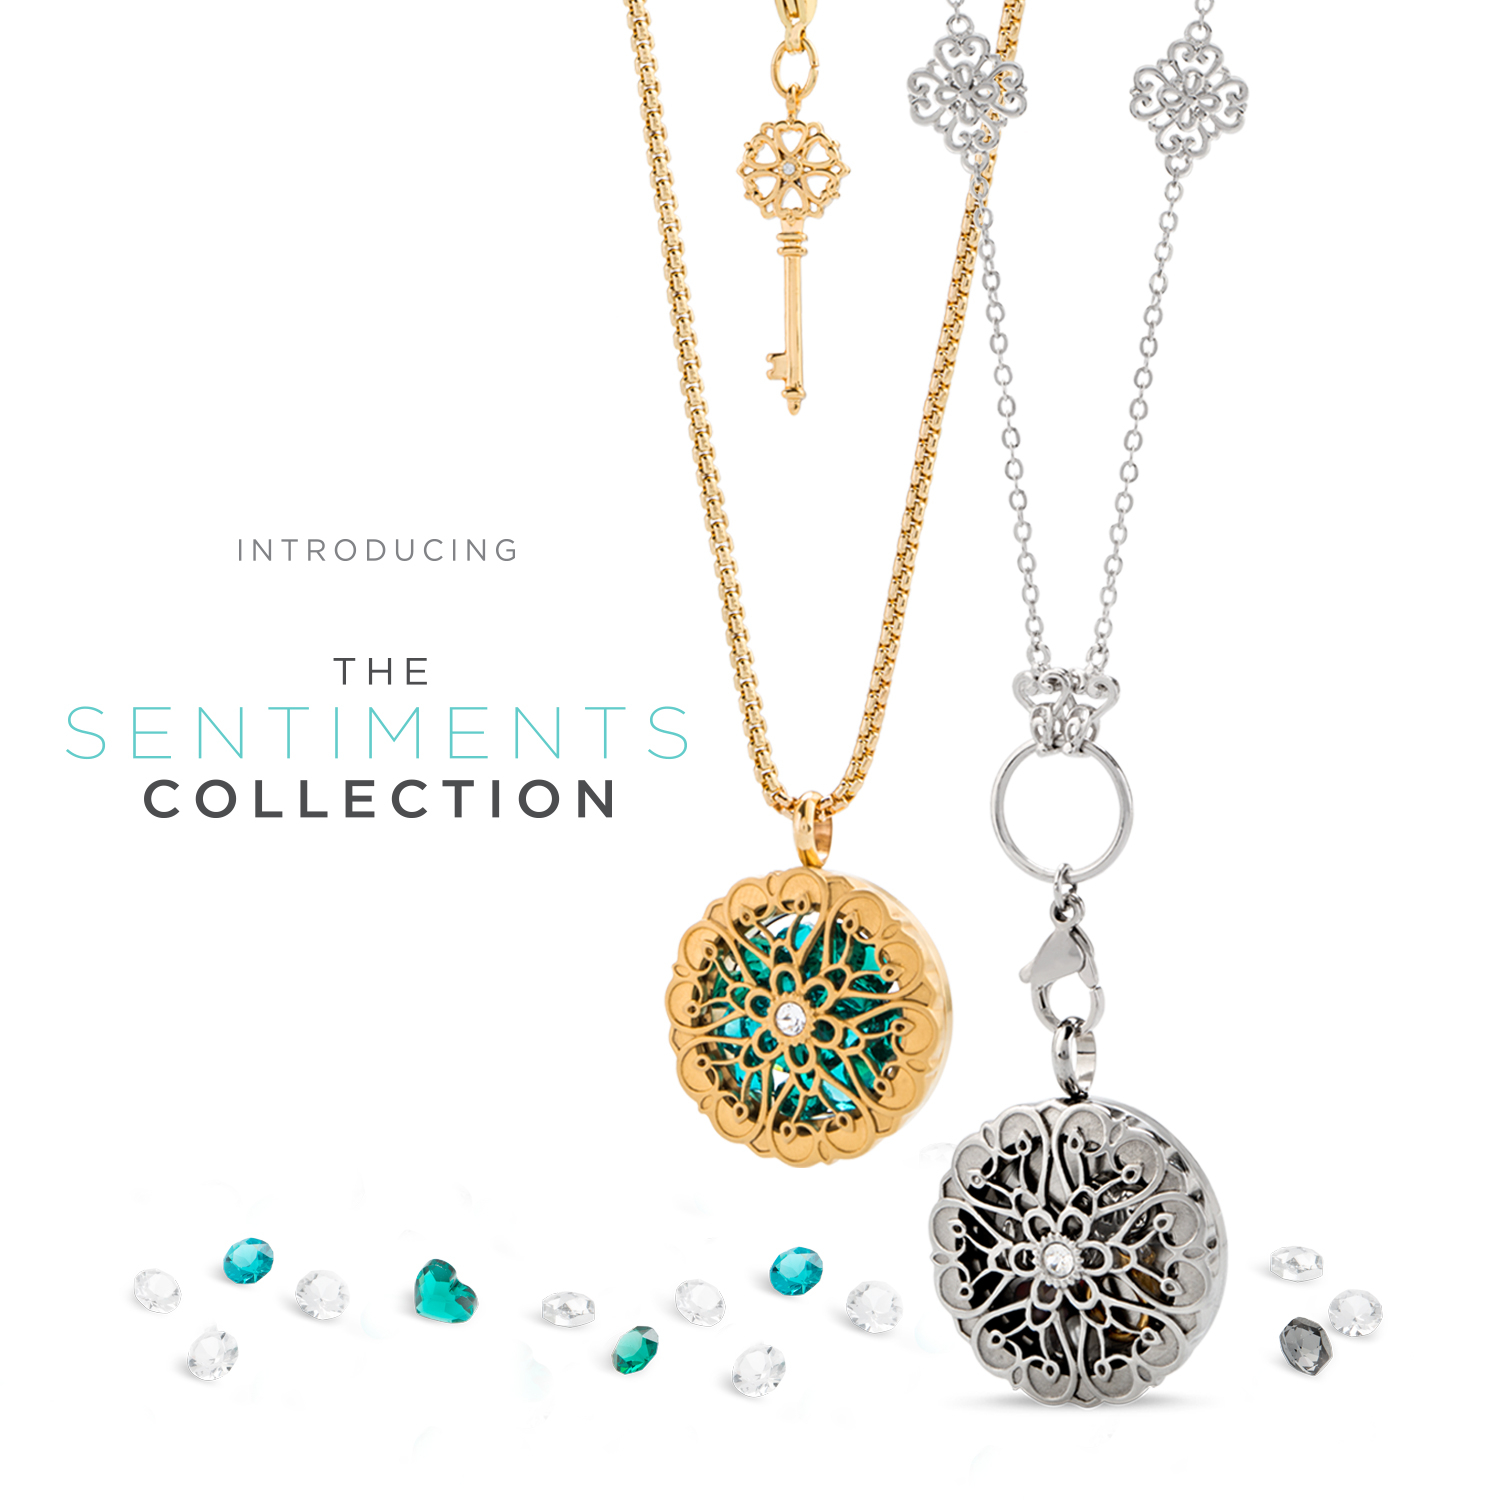 Origami Owl Over The Heart Chain Introducing The Sentiments Moodology Collections Origamiowlnews